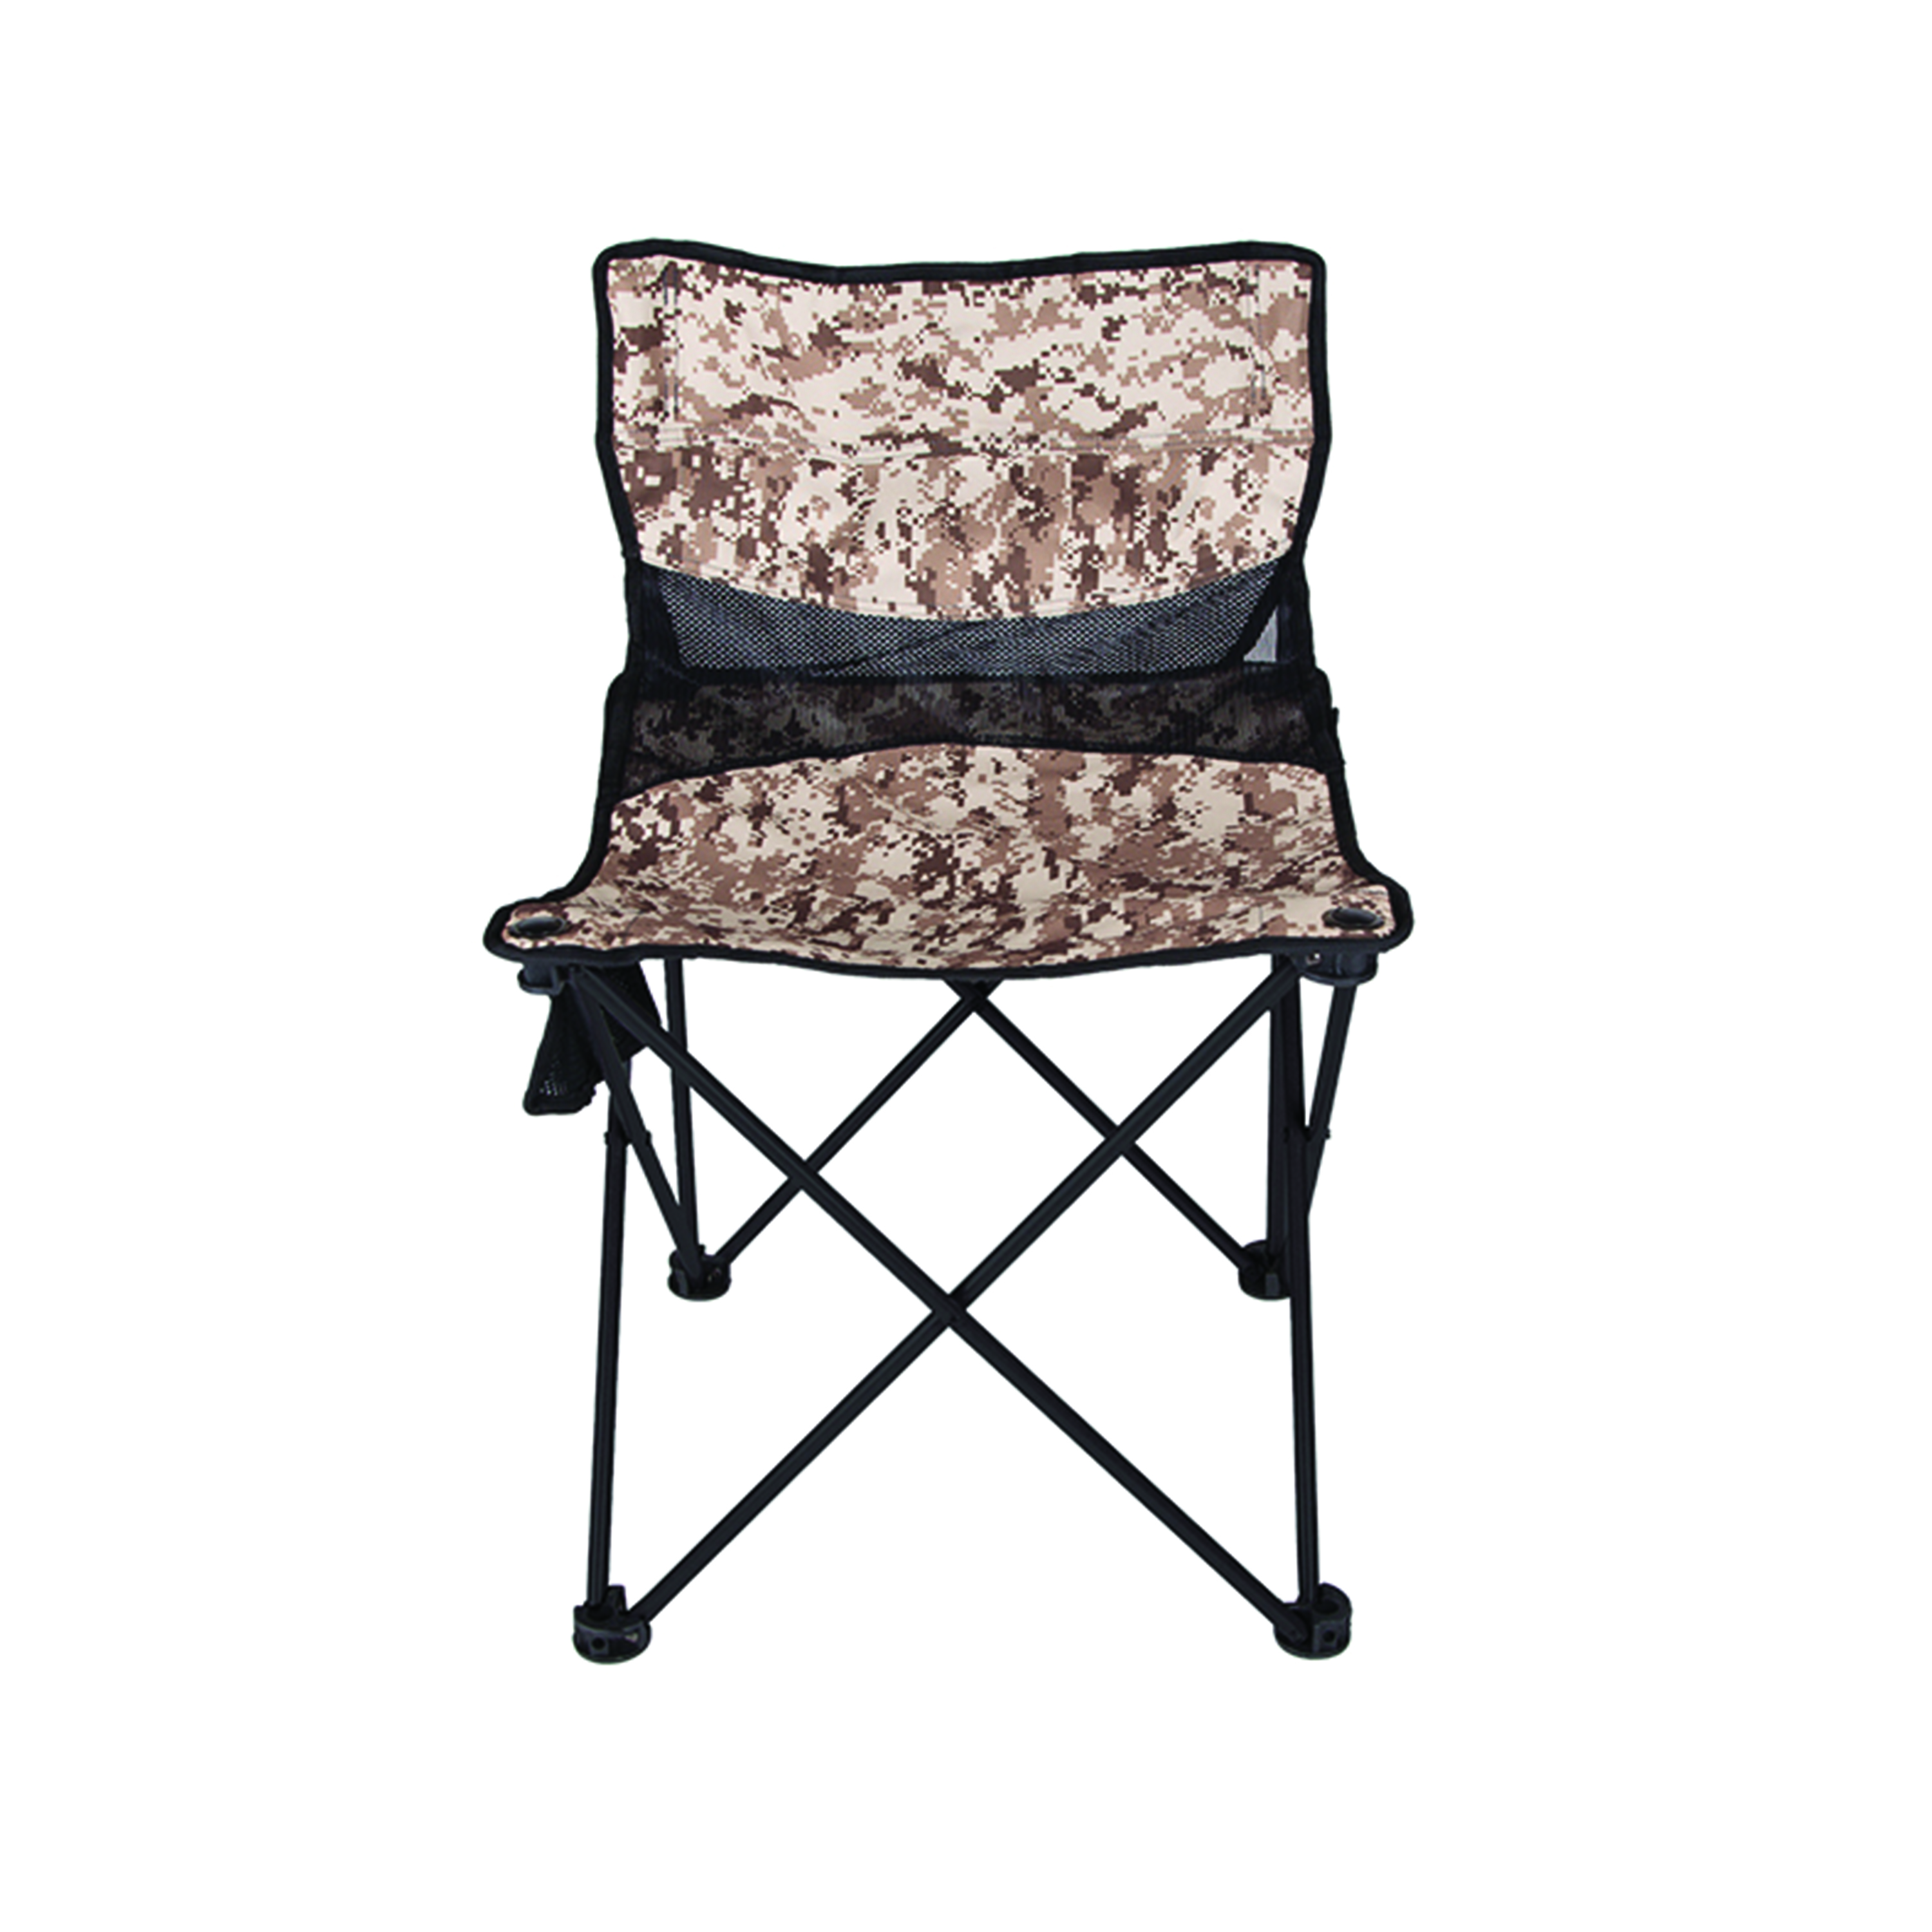 king kong folding chair lawn chairs target stansport deluxe sling back digital desert camouflage